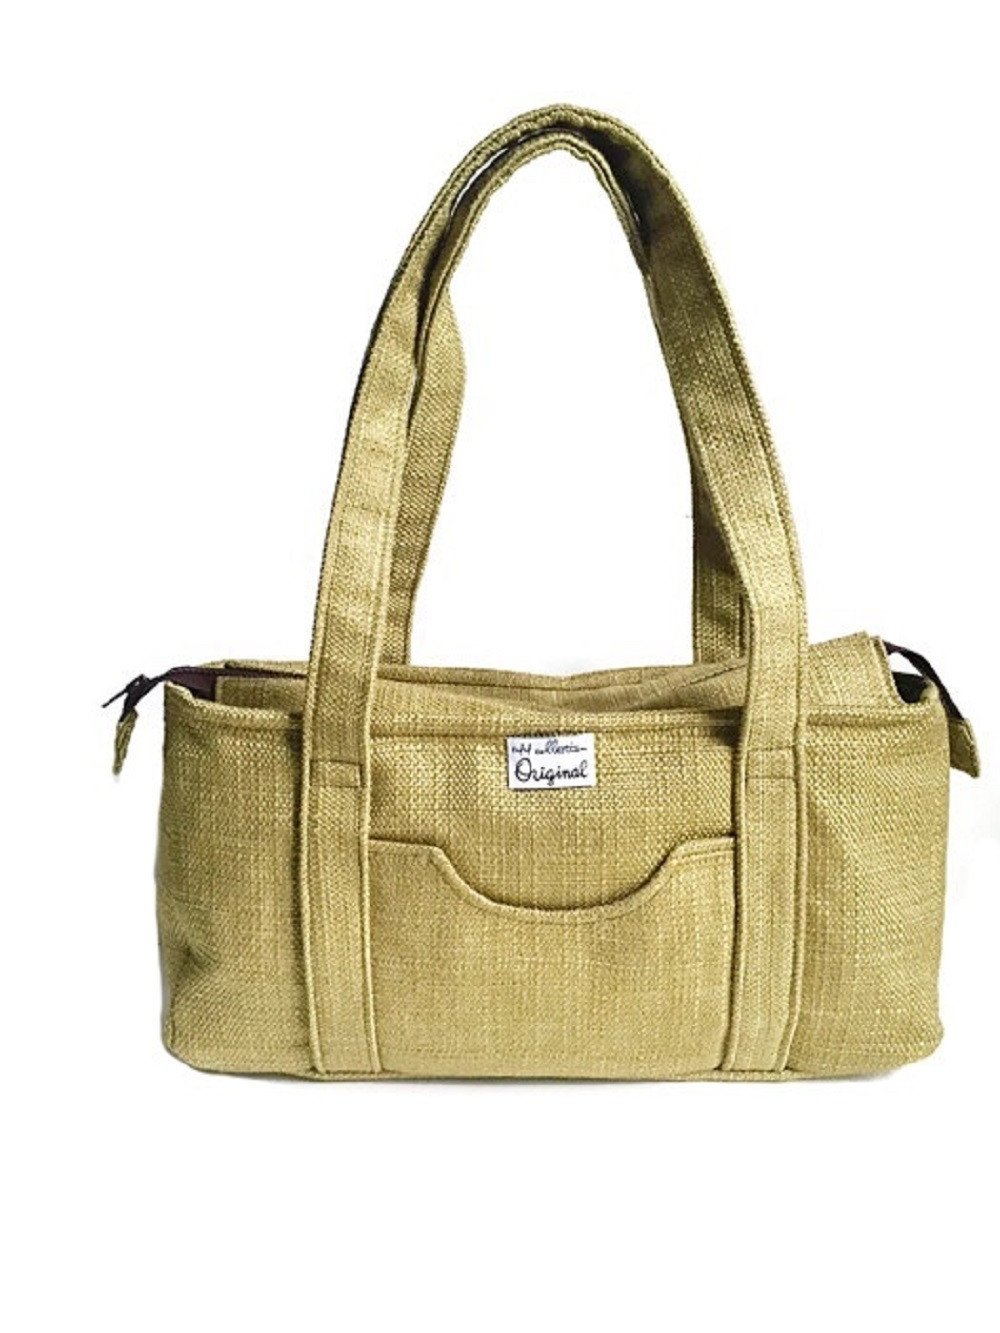 Fabric Handbags Made in the USA - Green Shoulder Bag for Women